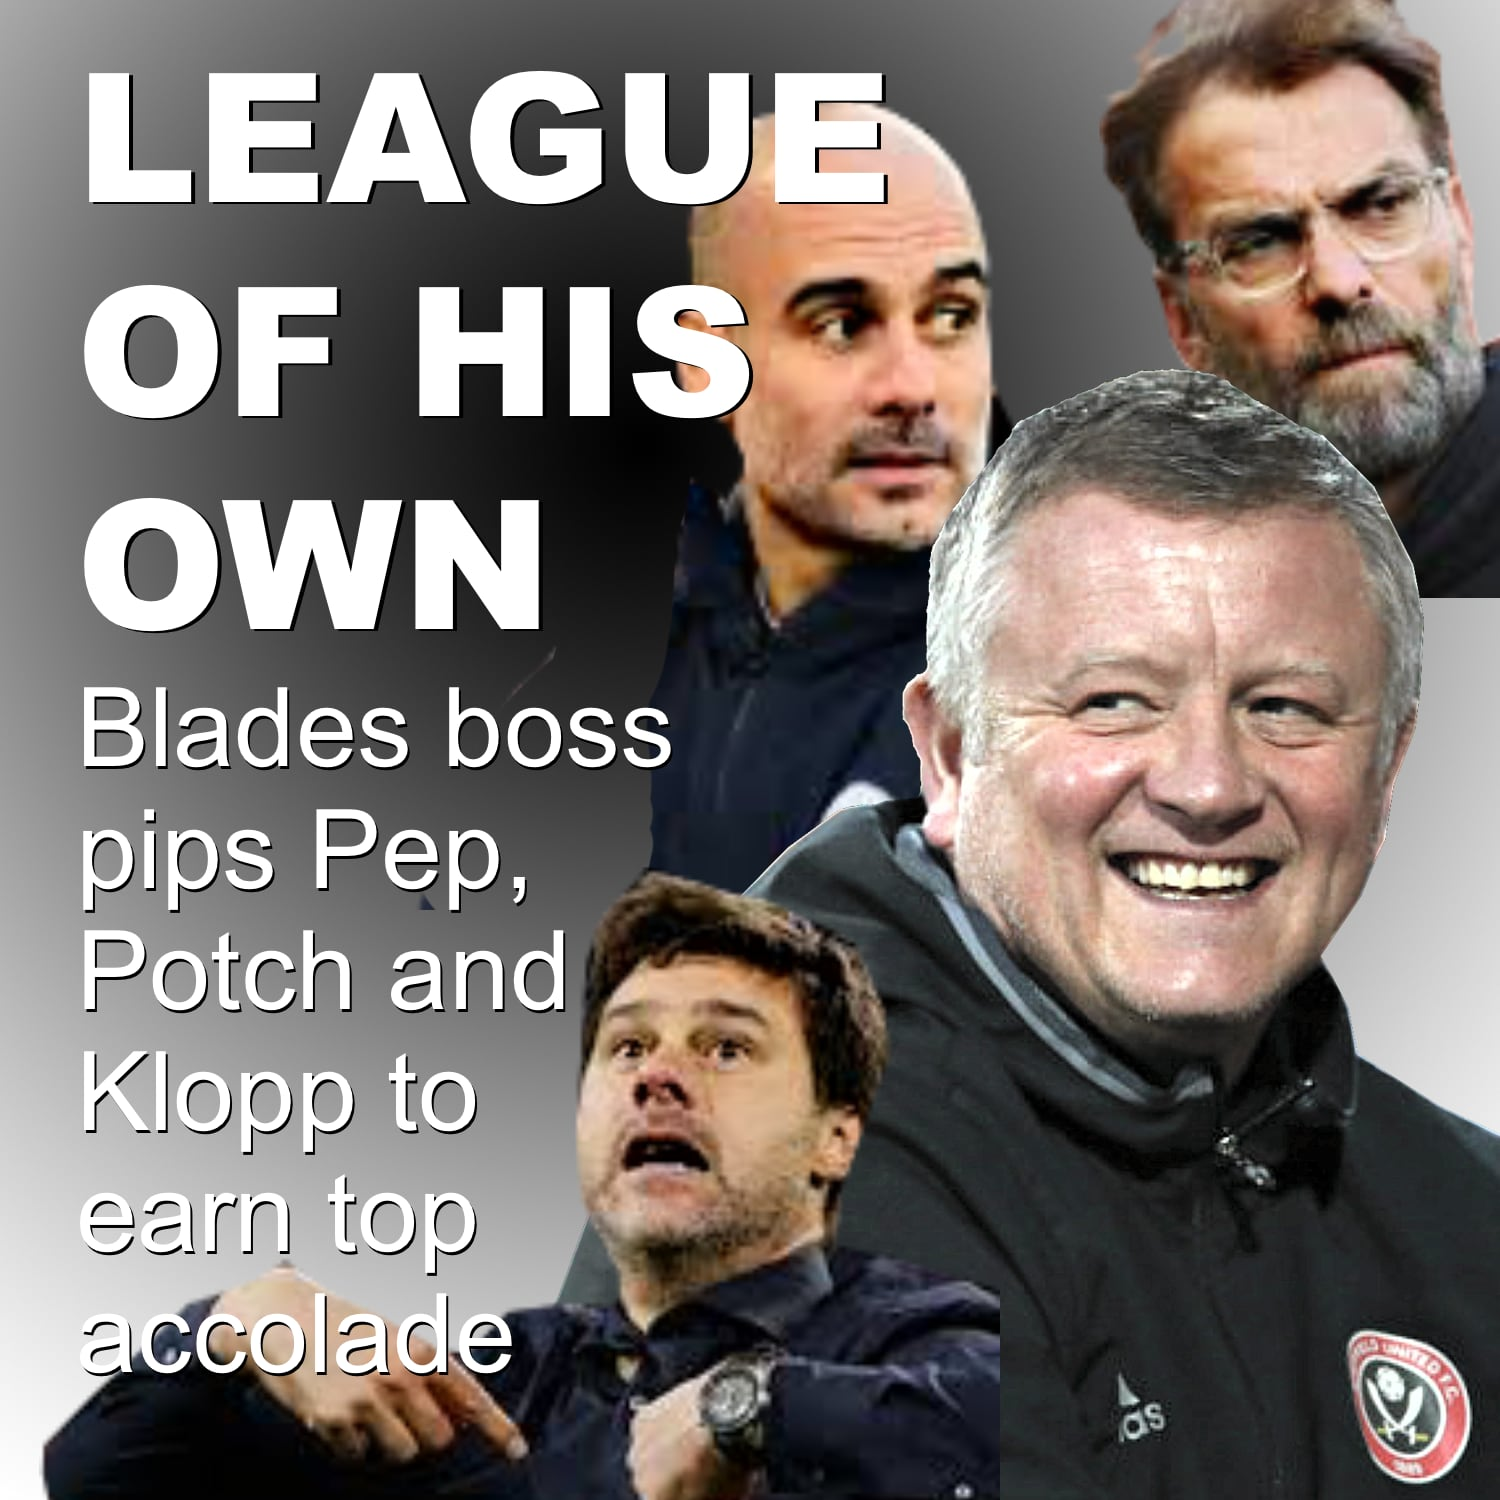 Sheffield United boss pips Pep, Potch and Klopp to earn LMA's top accolade